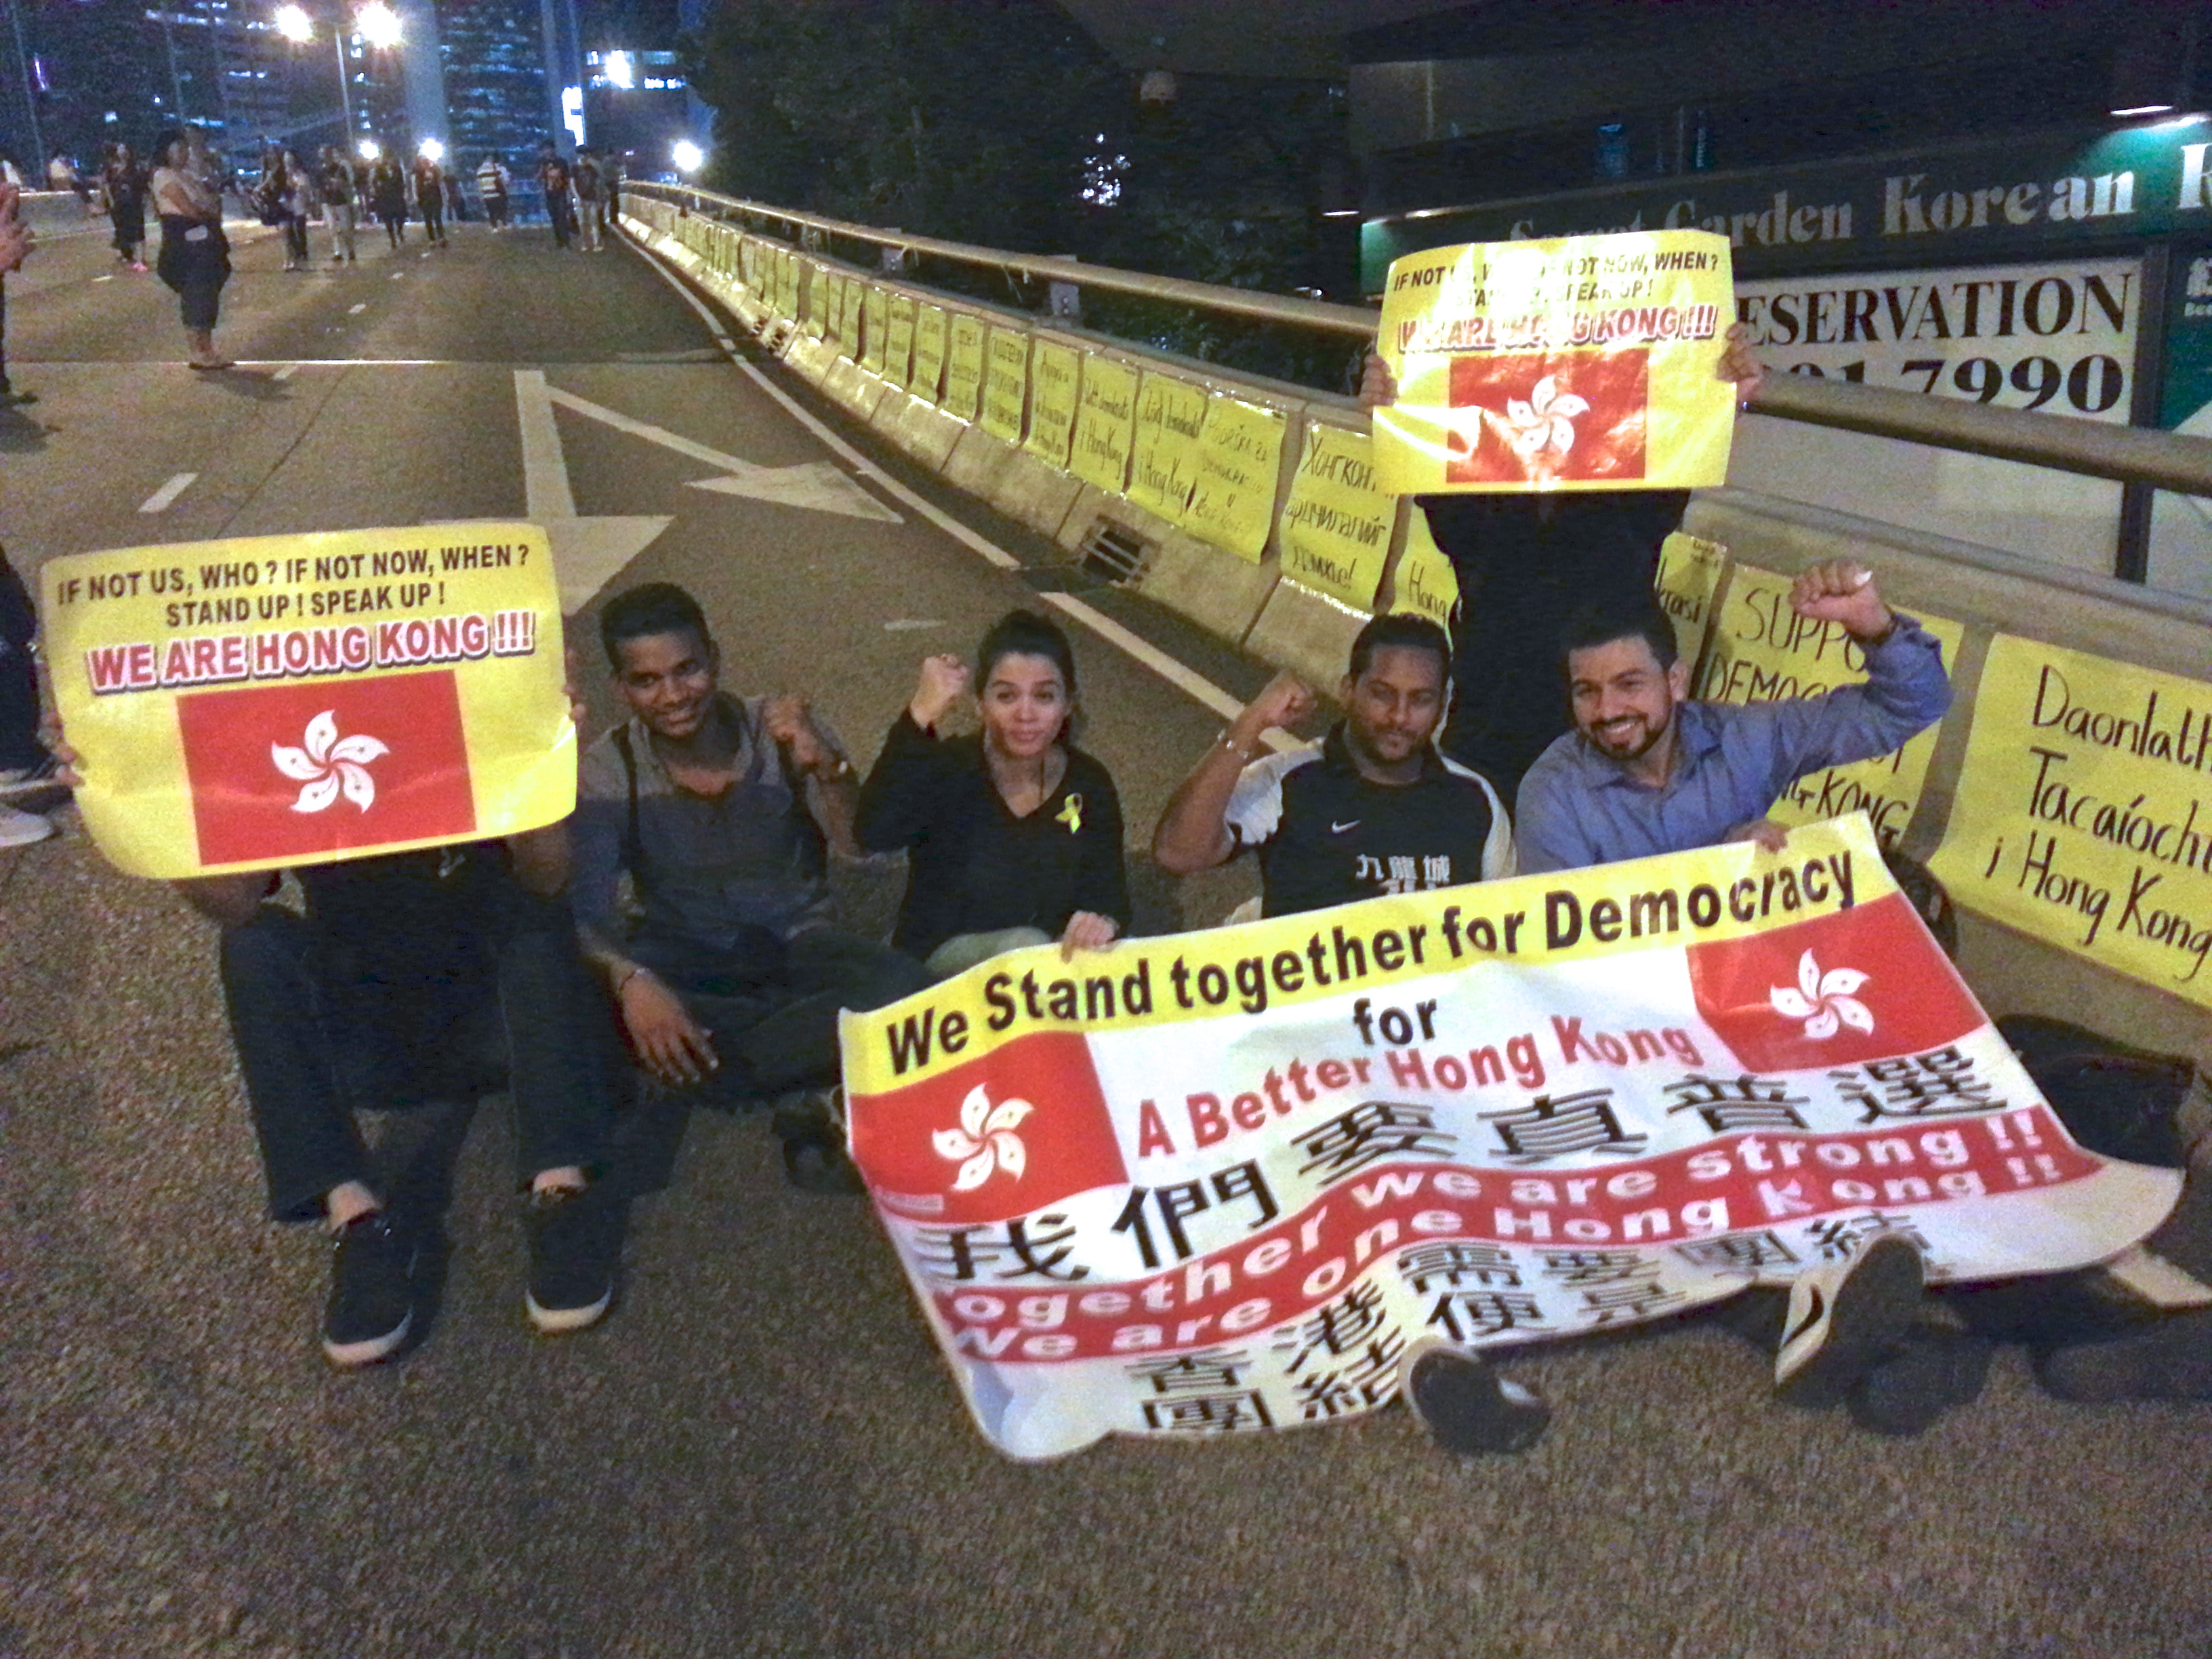 Members from Hong Kong's South Asian community take part in a protest for democracy on October 9, 2014 in the Central district of Hong Kong.